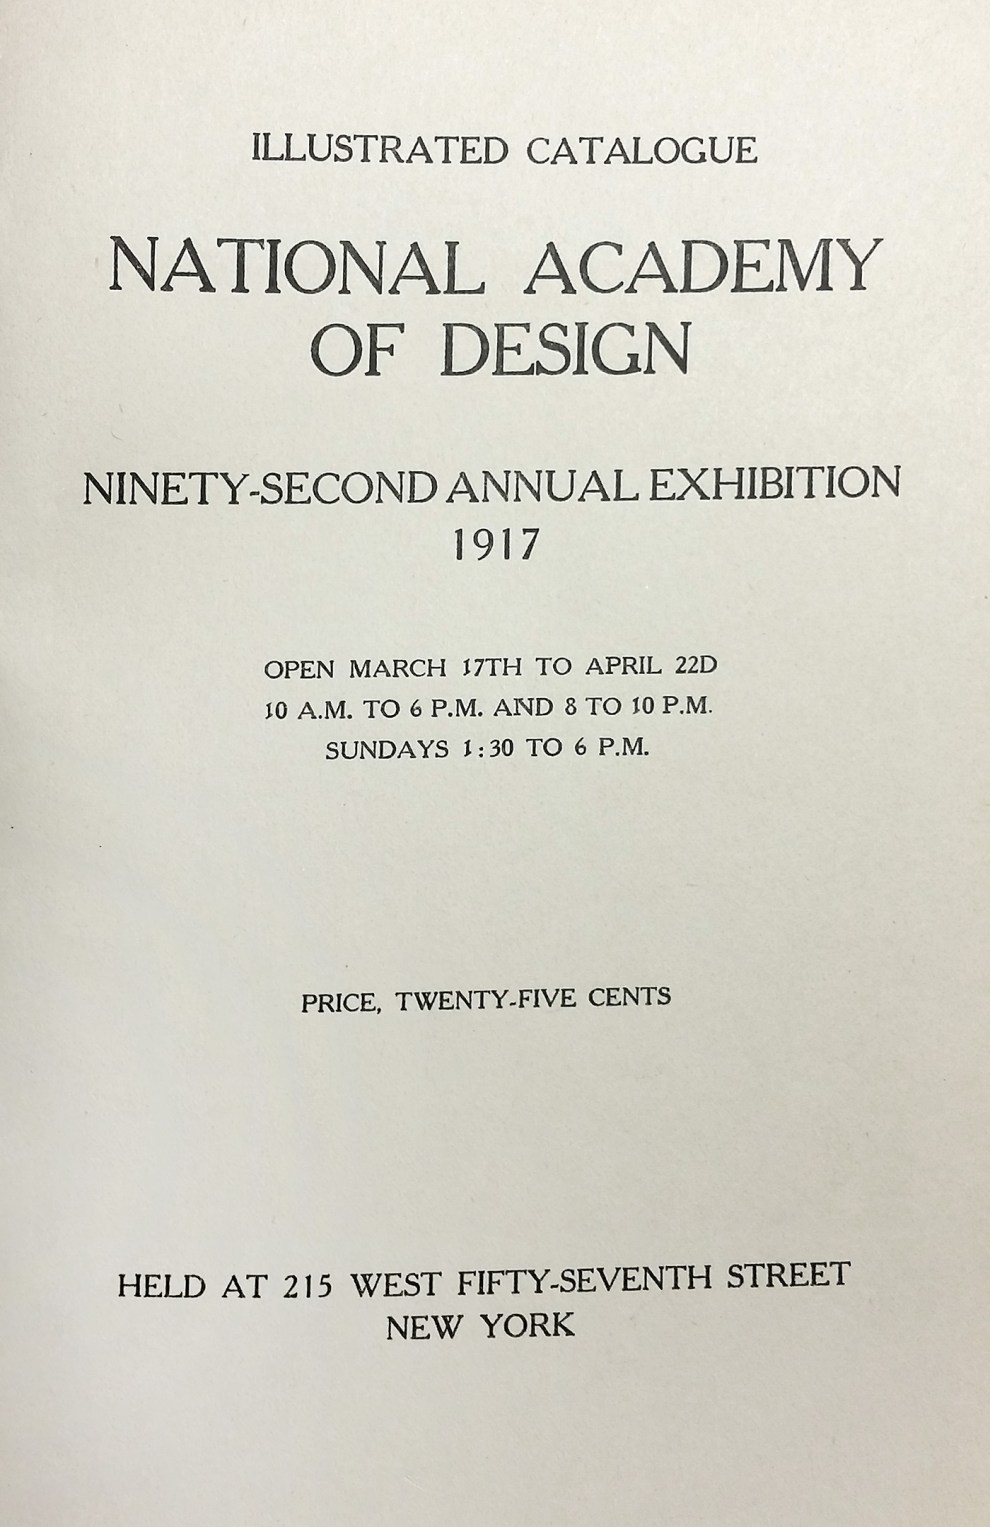 "1917 National Academy of Design, New York, NY, ""Ninety-Second Annual Exhibition"", March 17 - April 22"